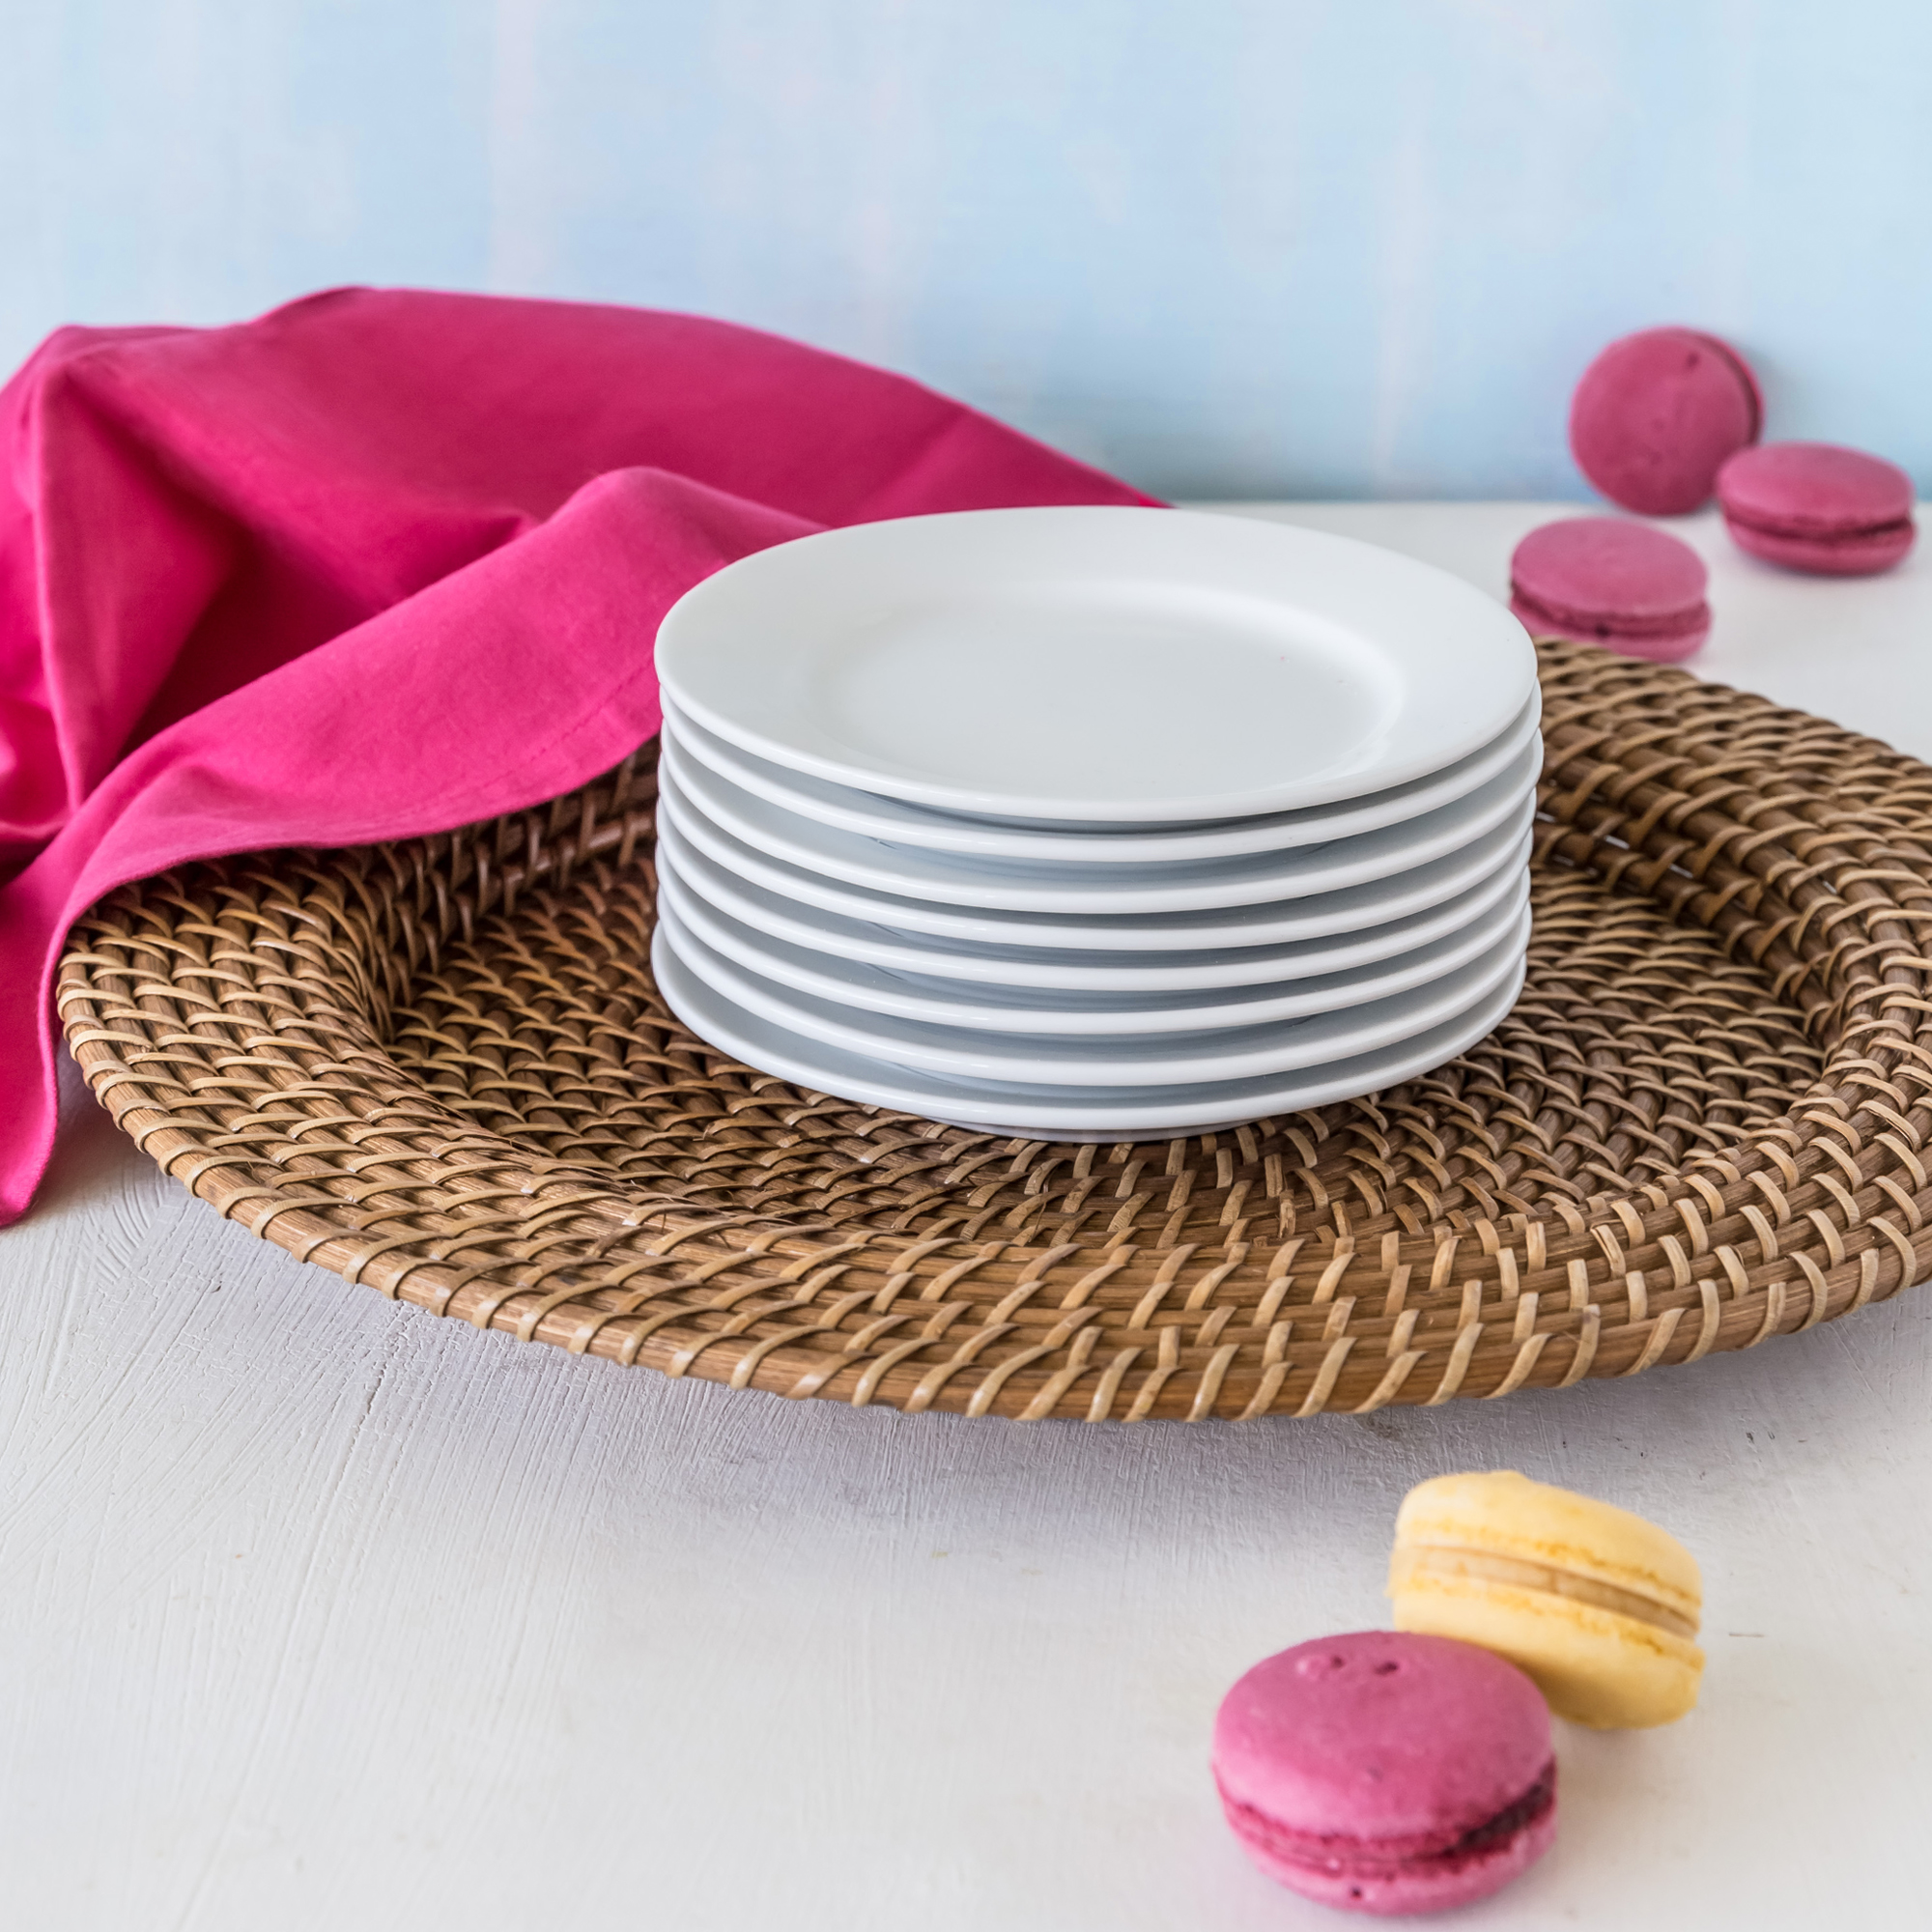 Better Homes and Gardens Round Appetizer Plates, White, Set of 8